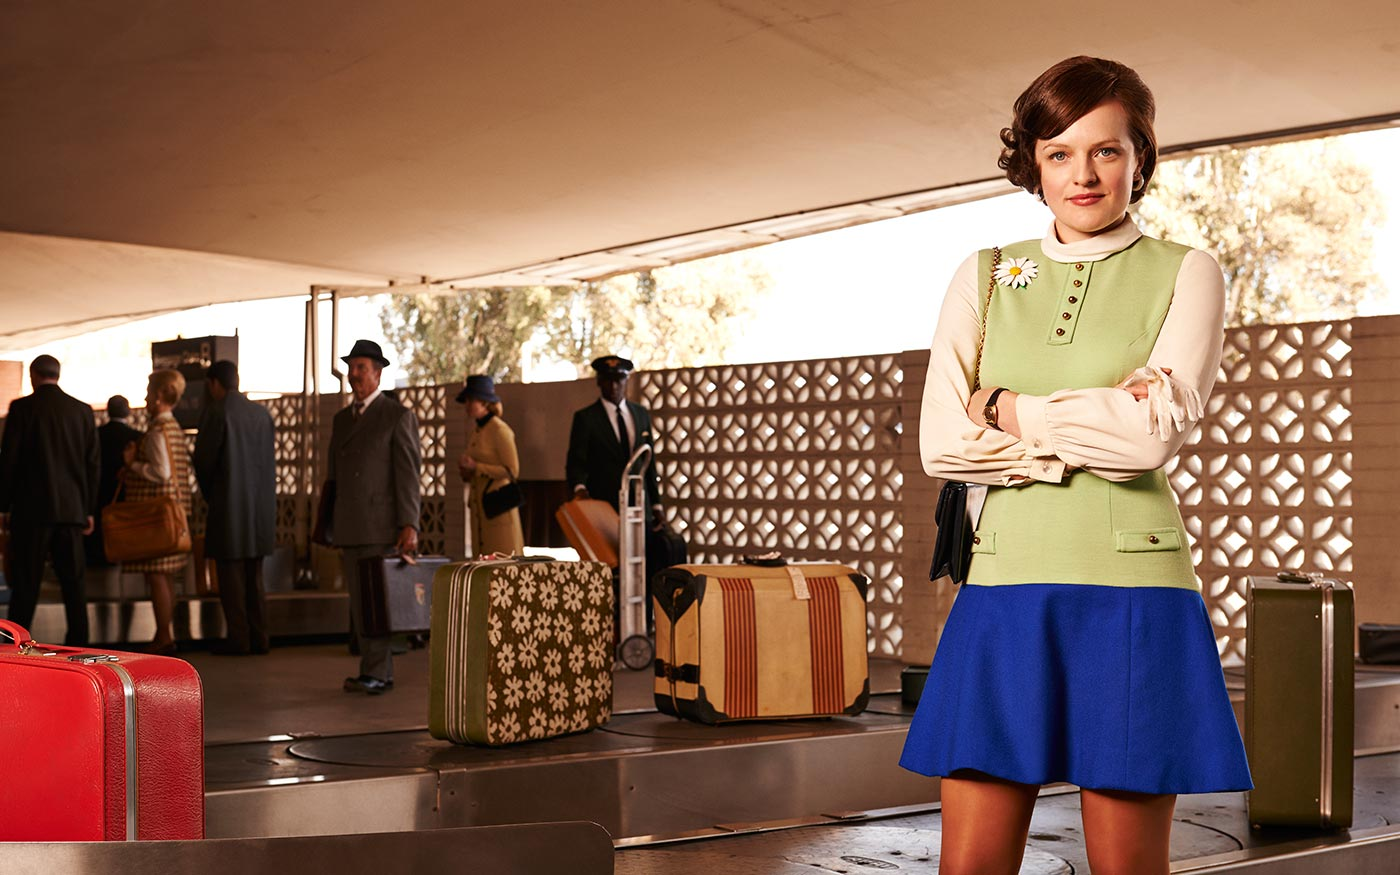 Peggy Olson was the real copywriter